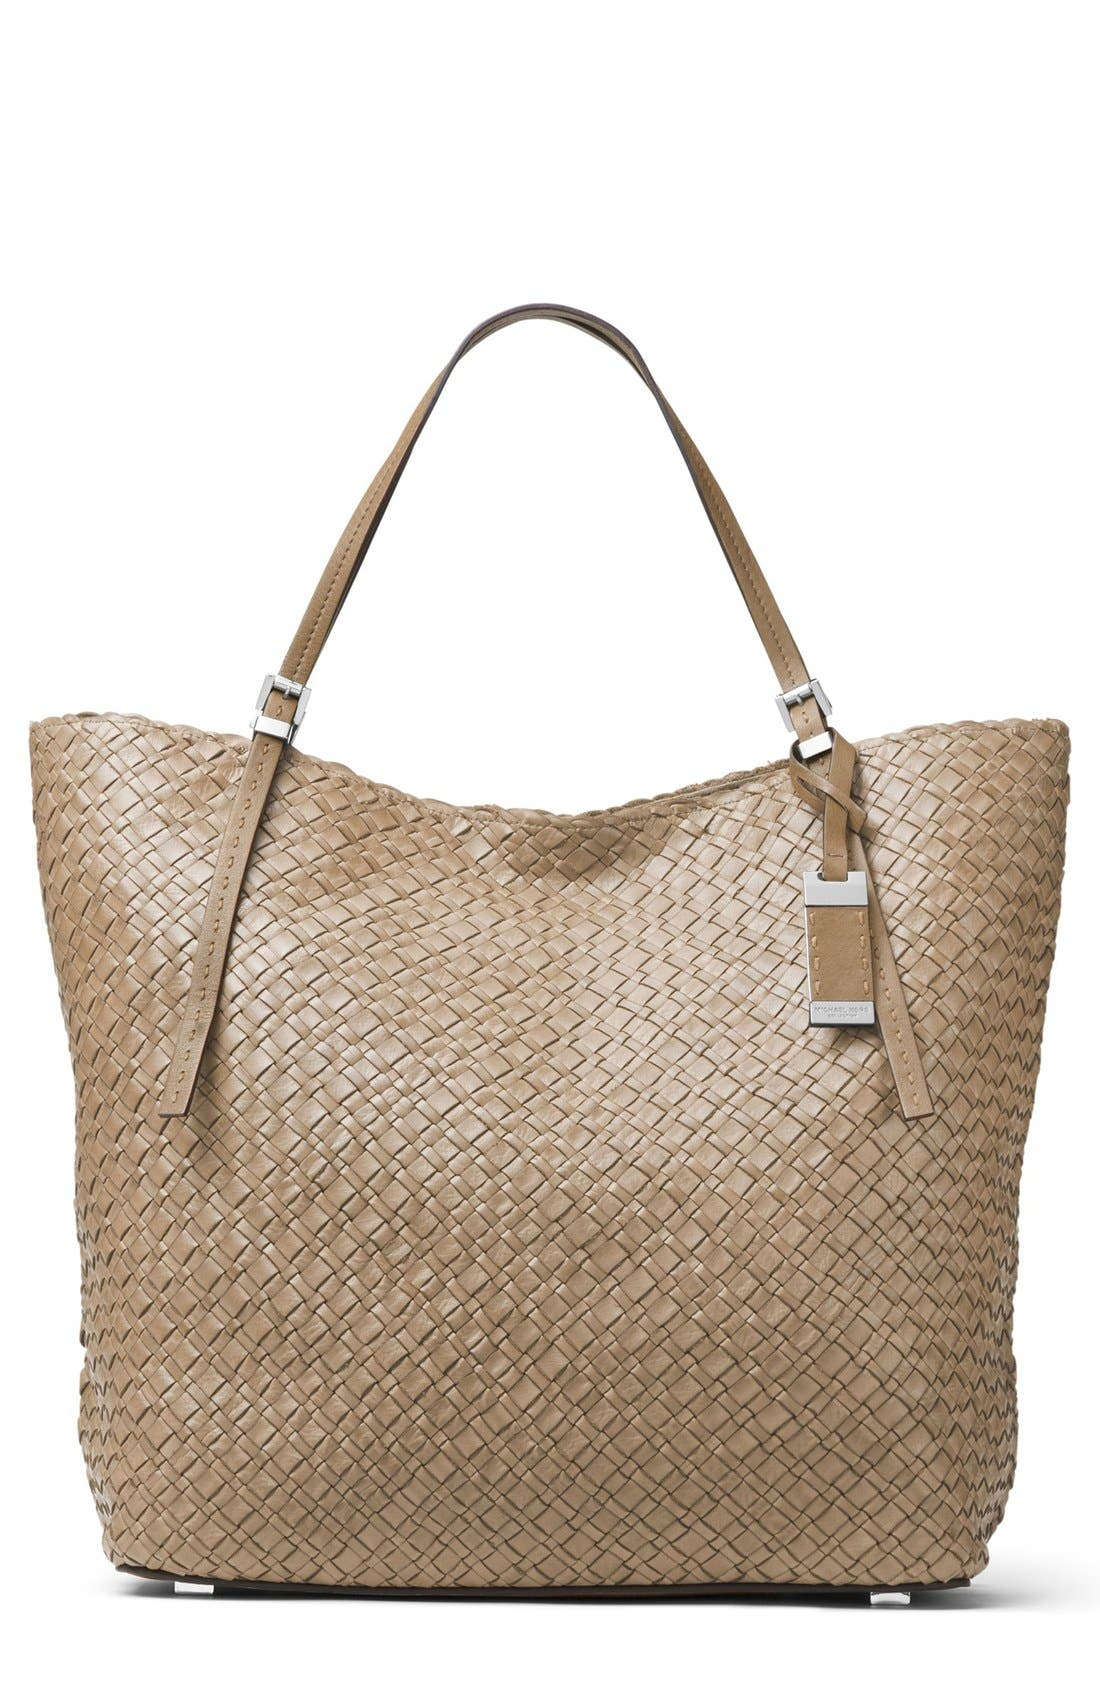 Main Image - Michael Kors Large Hutton Woven Leather Tote